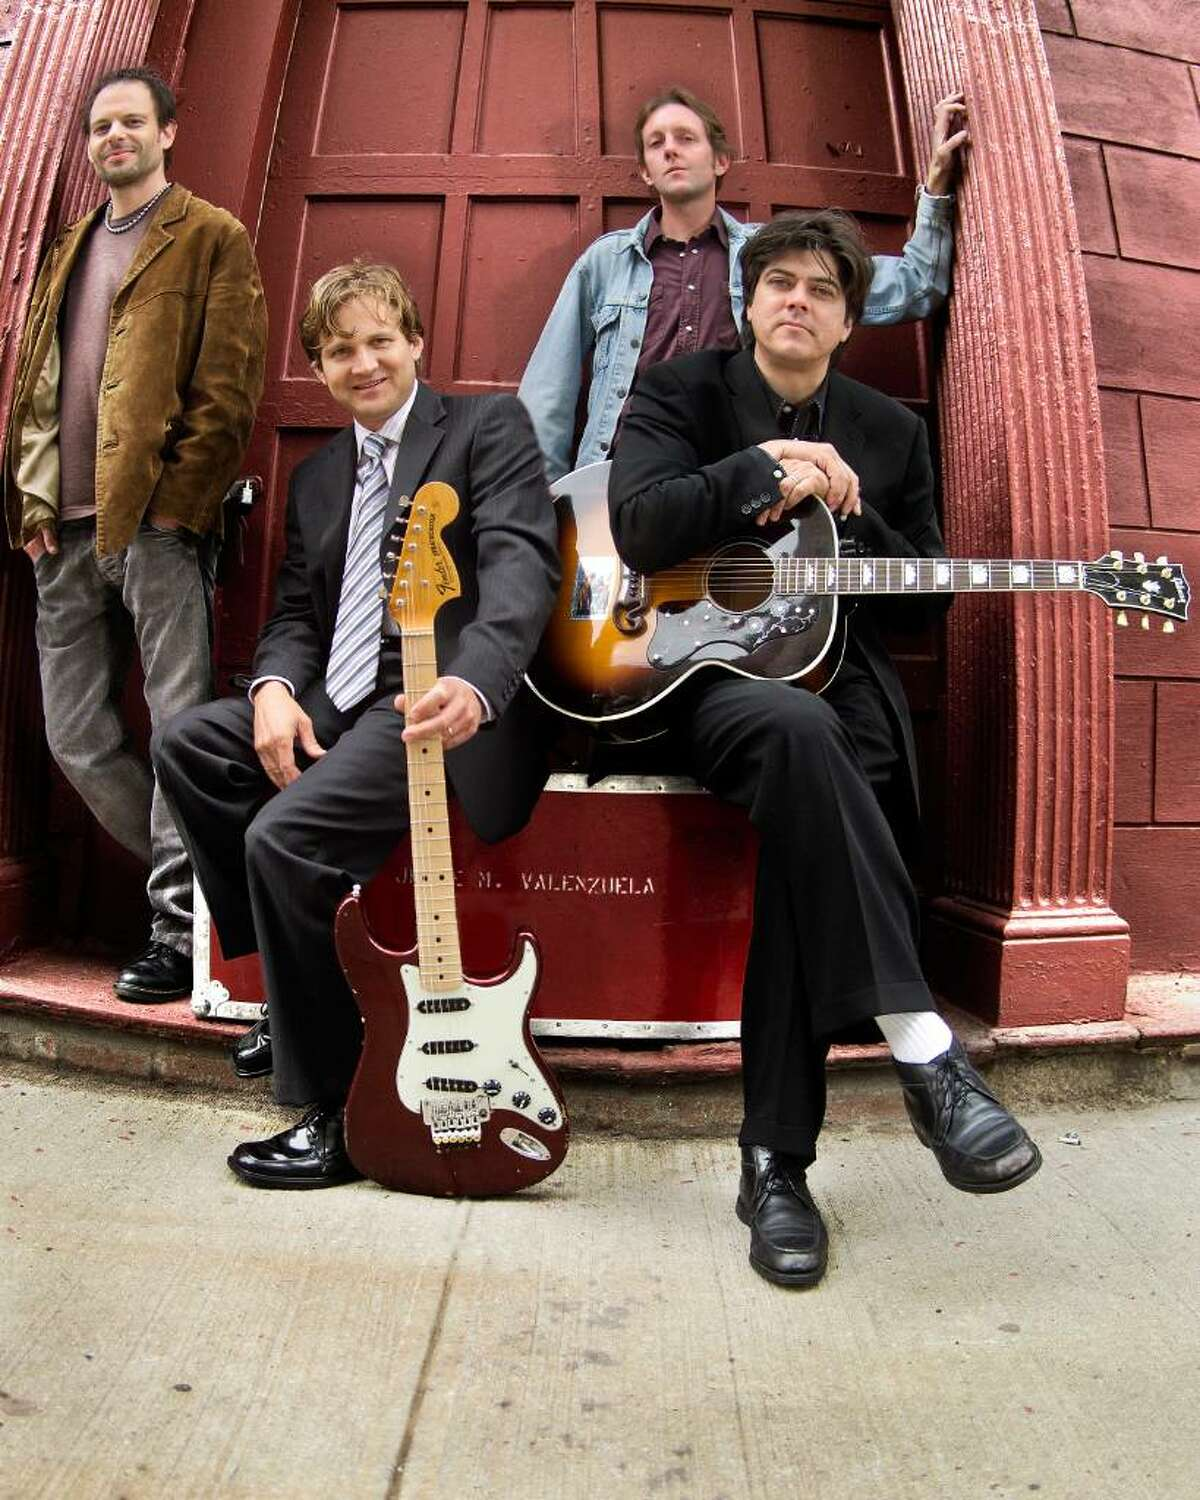 The Gin Blossoms will perform for Alive at 5 in Albany.